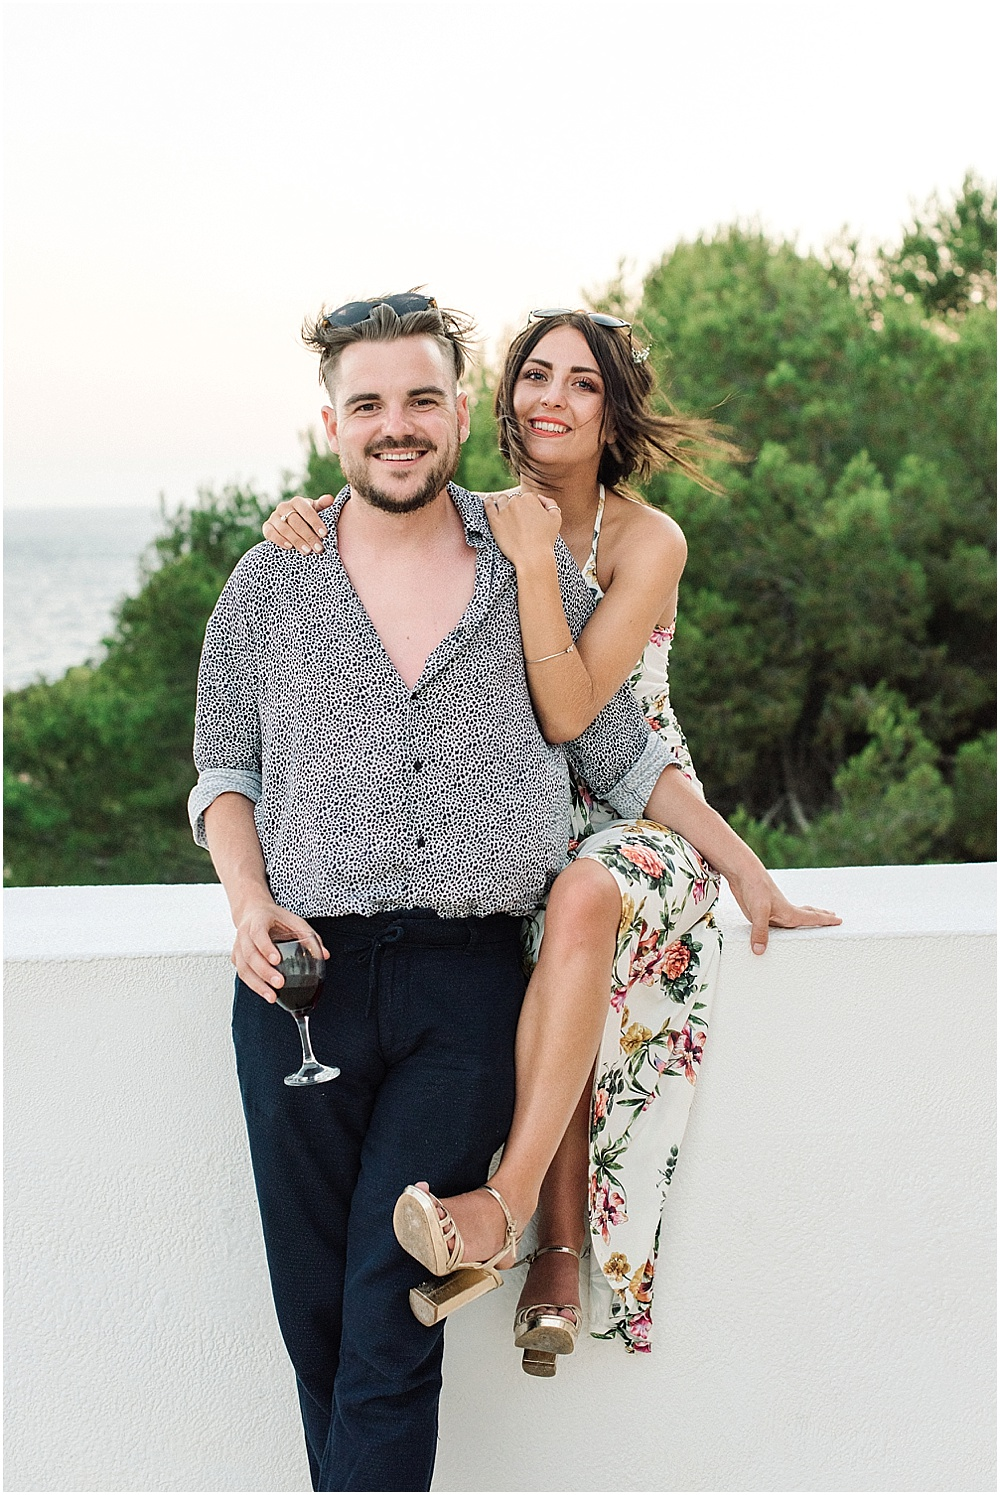 Ibiza Mallorca Best Wedding Photos of 201827.jpg